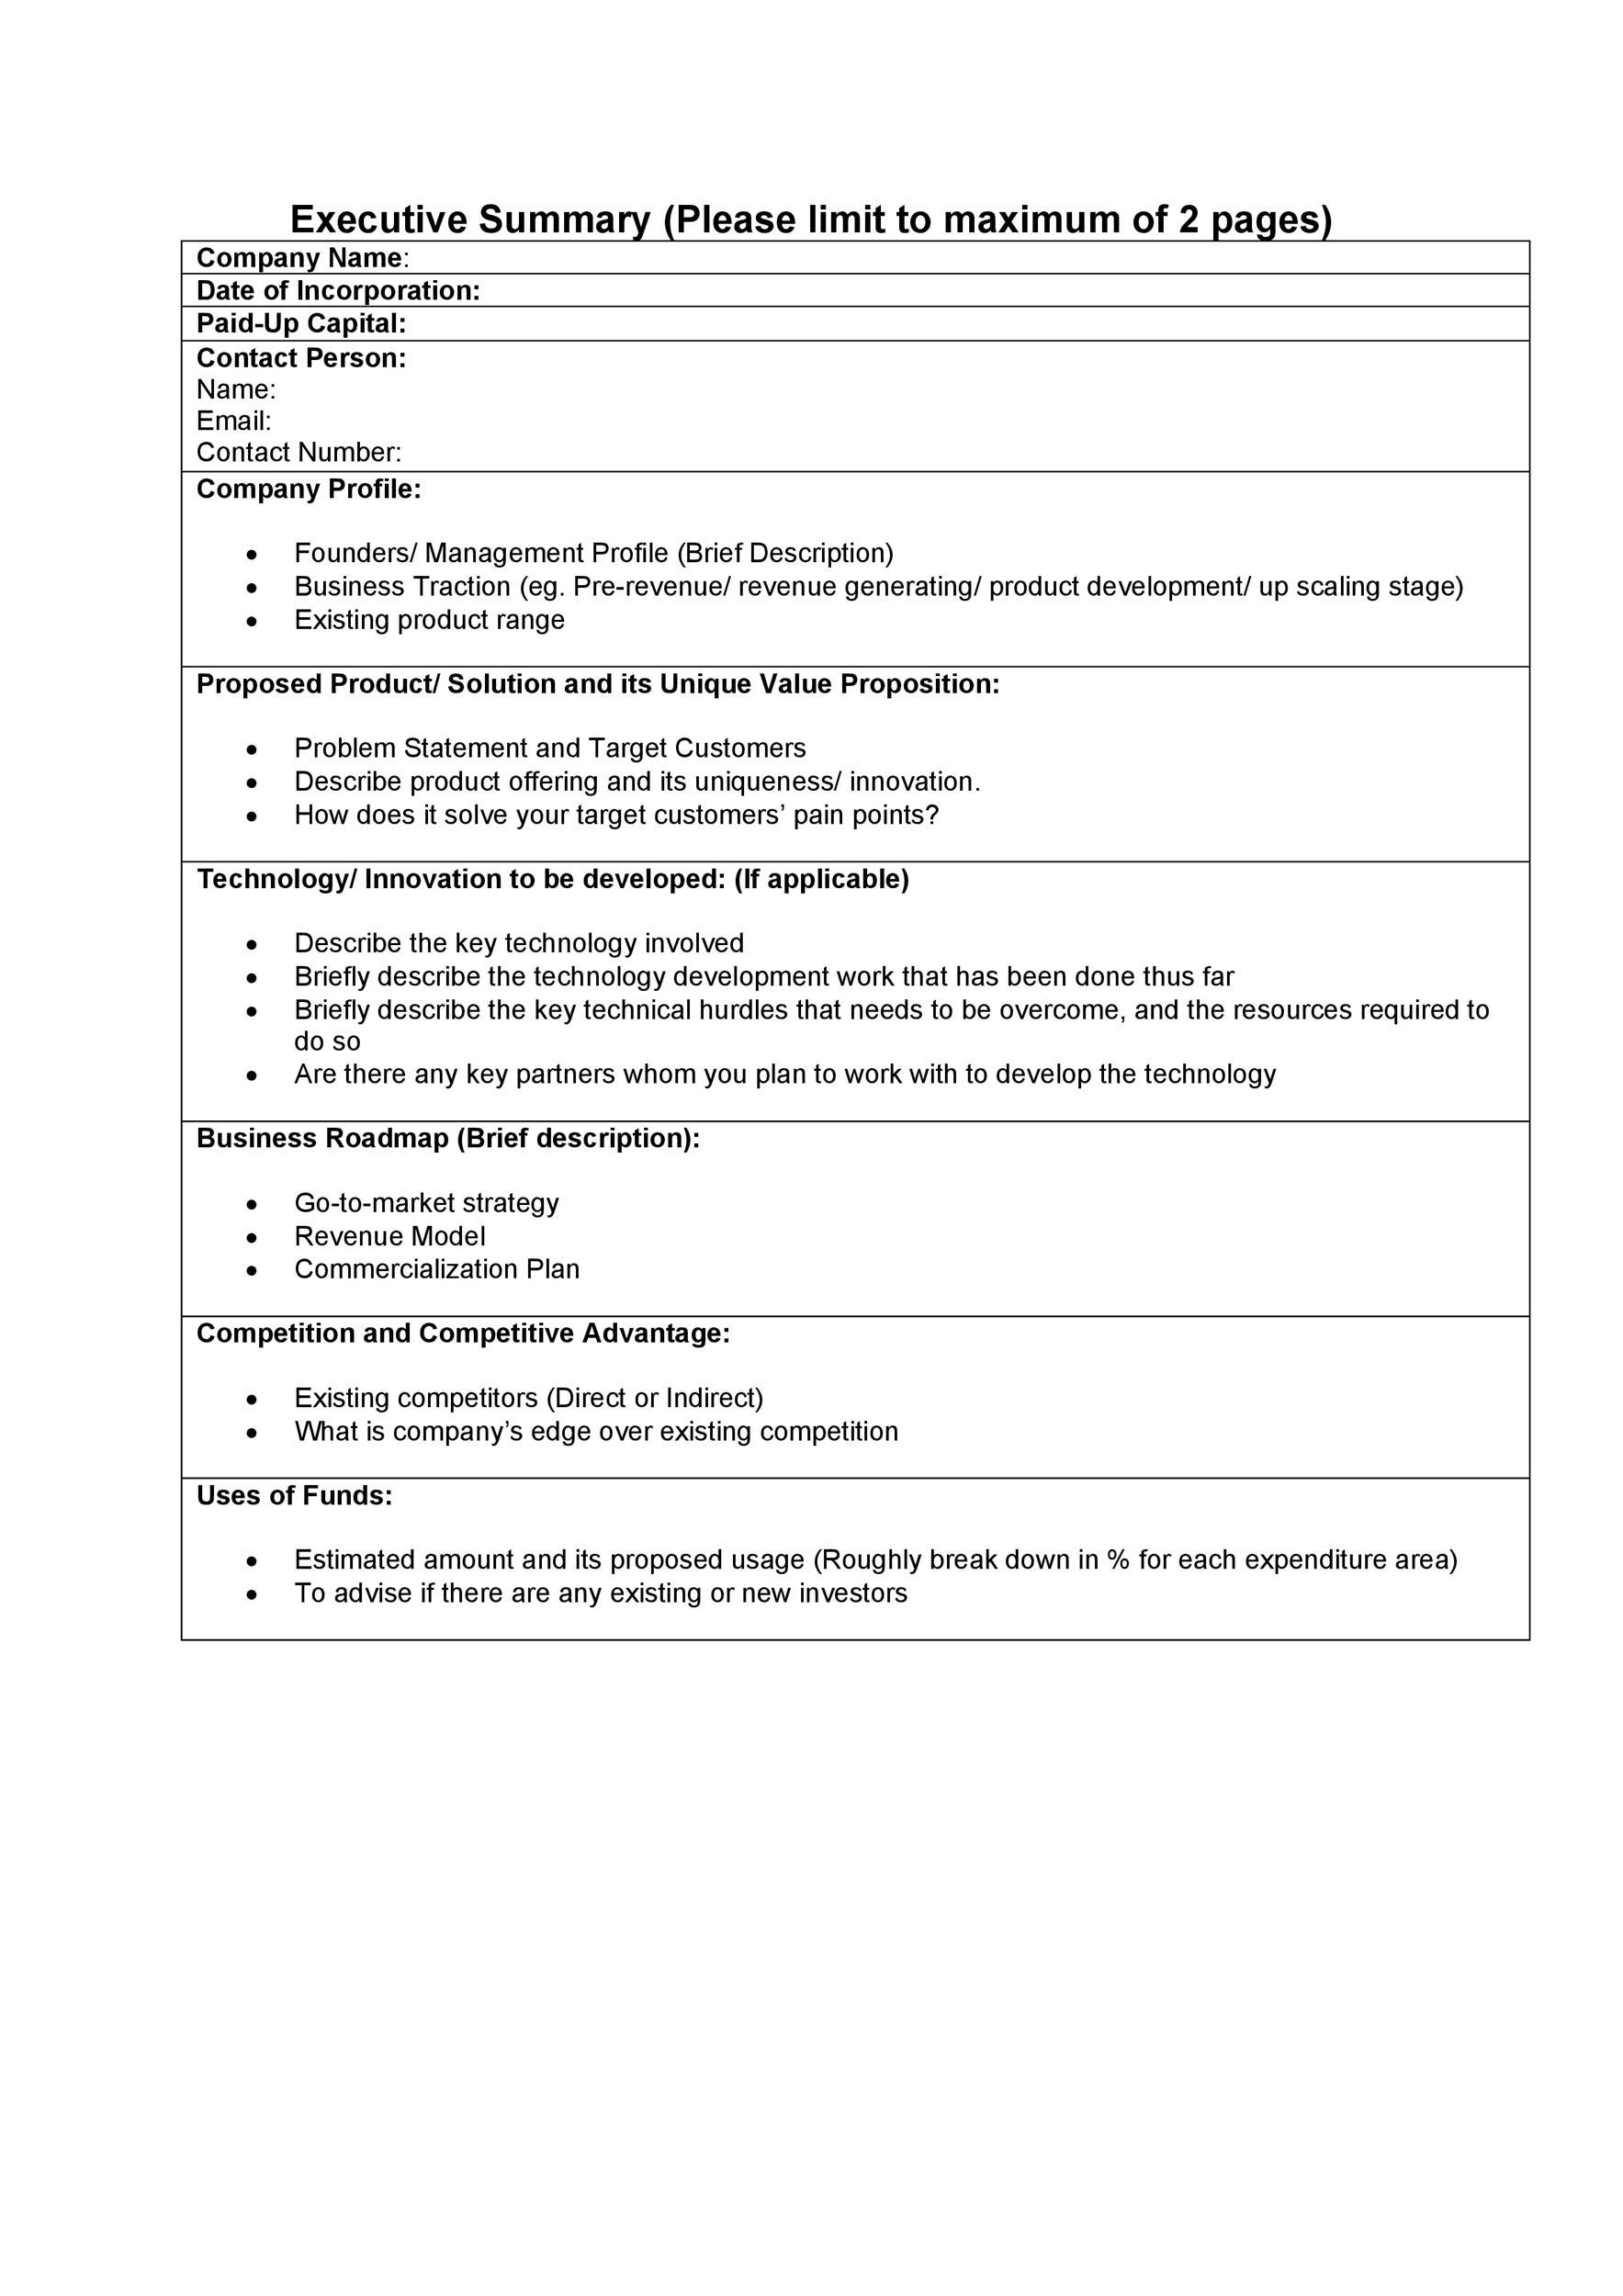 Free Executive Summary Template 30